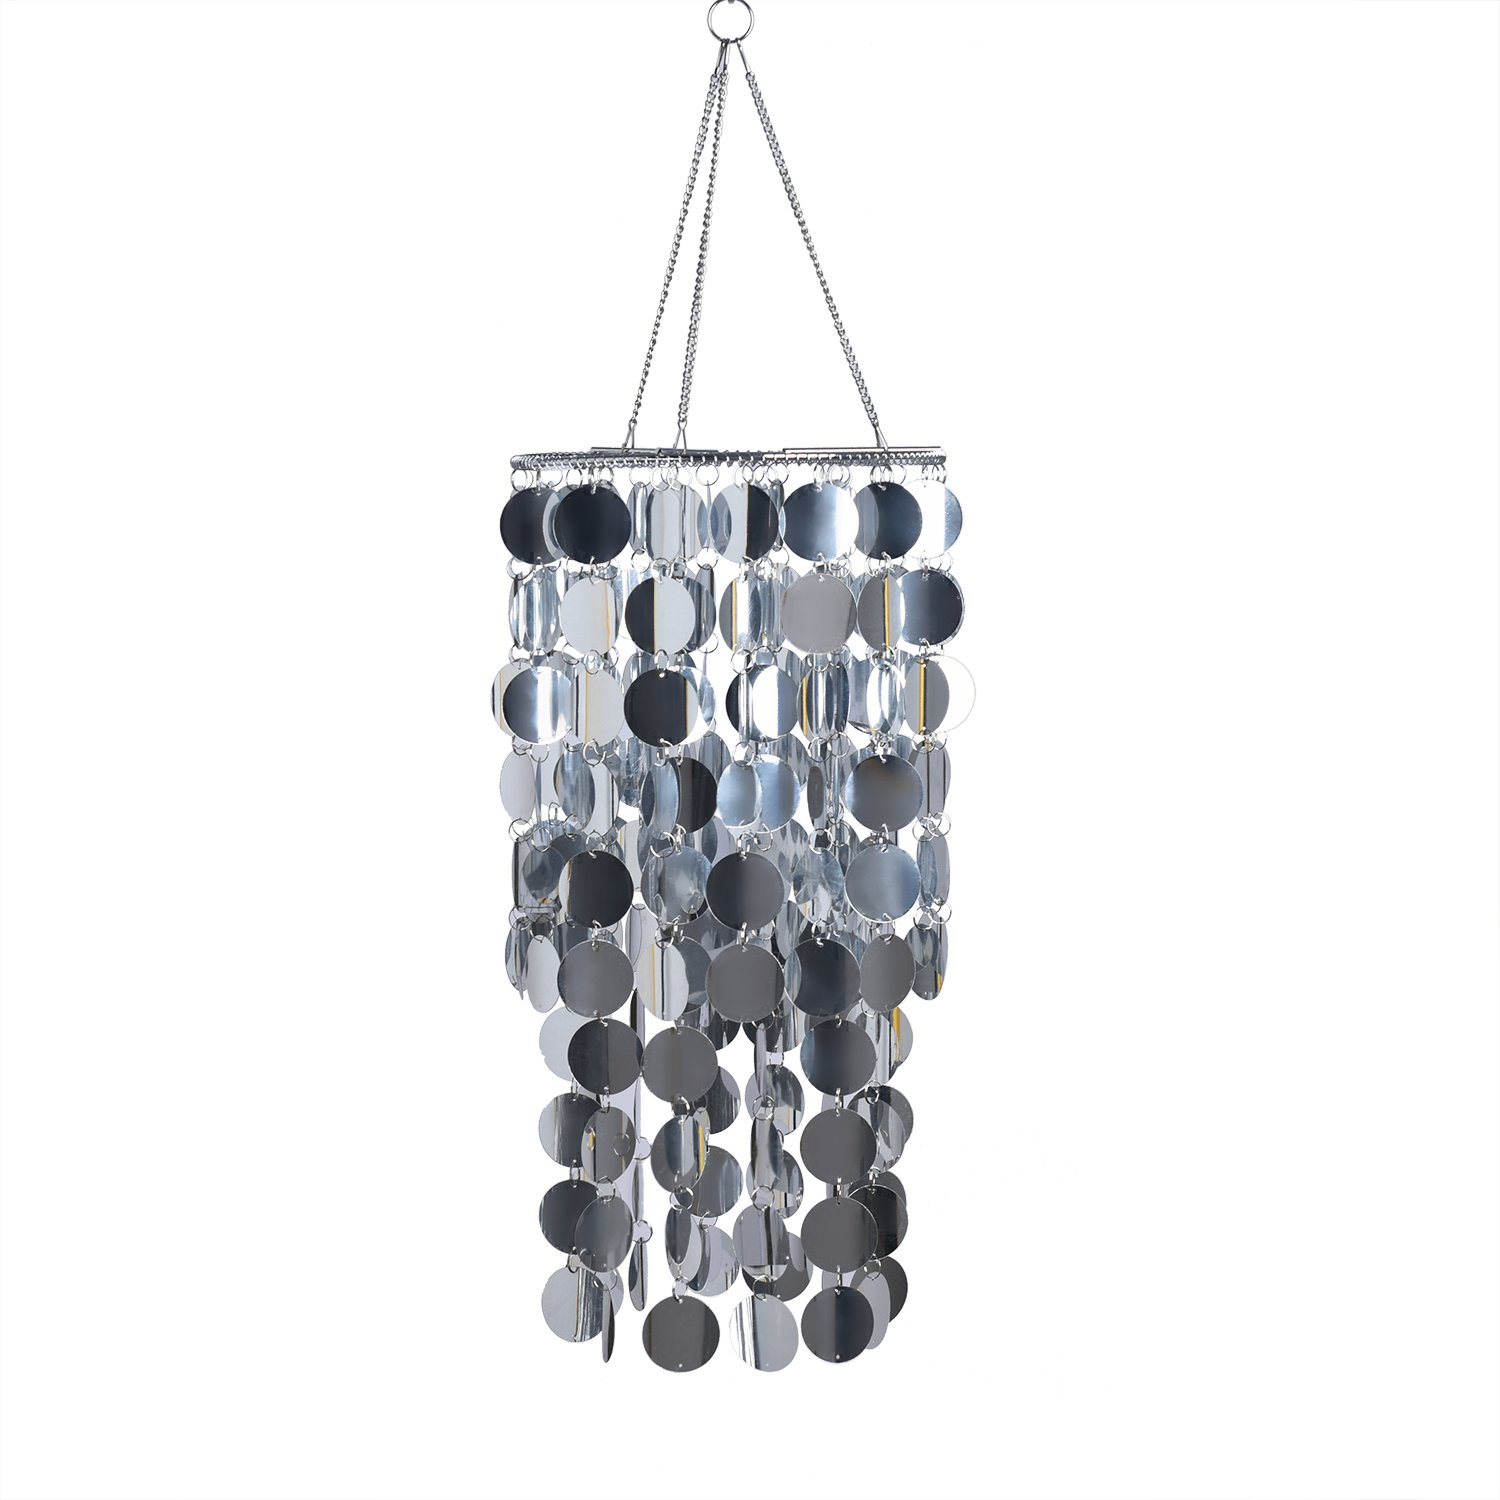 FlavorThings Silver Bling Hanging Chandelier Great idea for Wedding Chandeliers Centerpieces Decorations and Any Event Party Decor